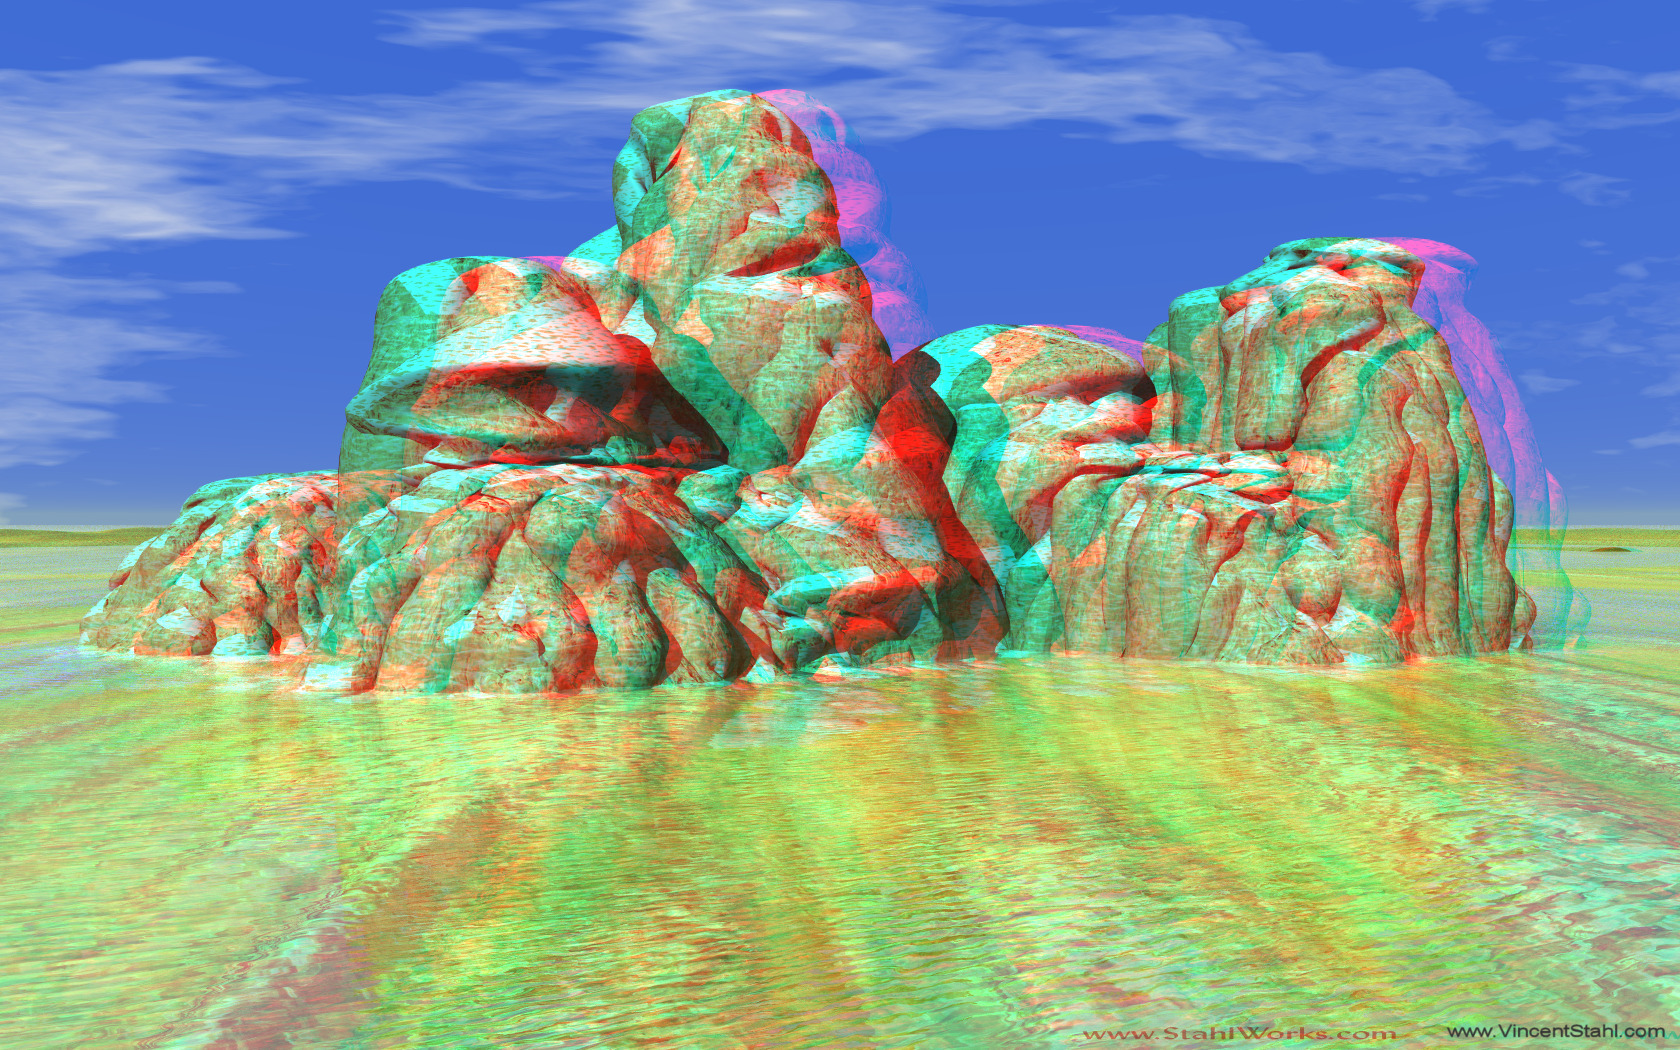 Potato Rocks - 3D stereo anaglyph color